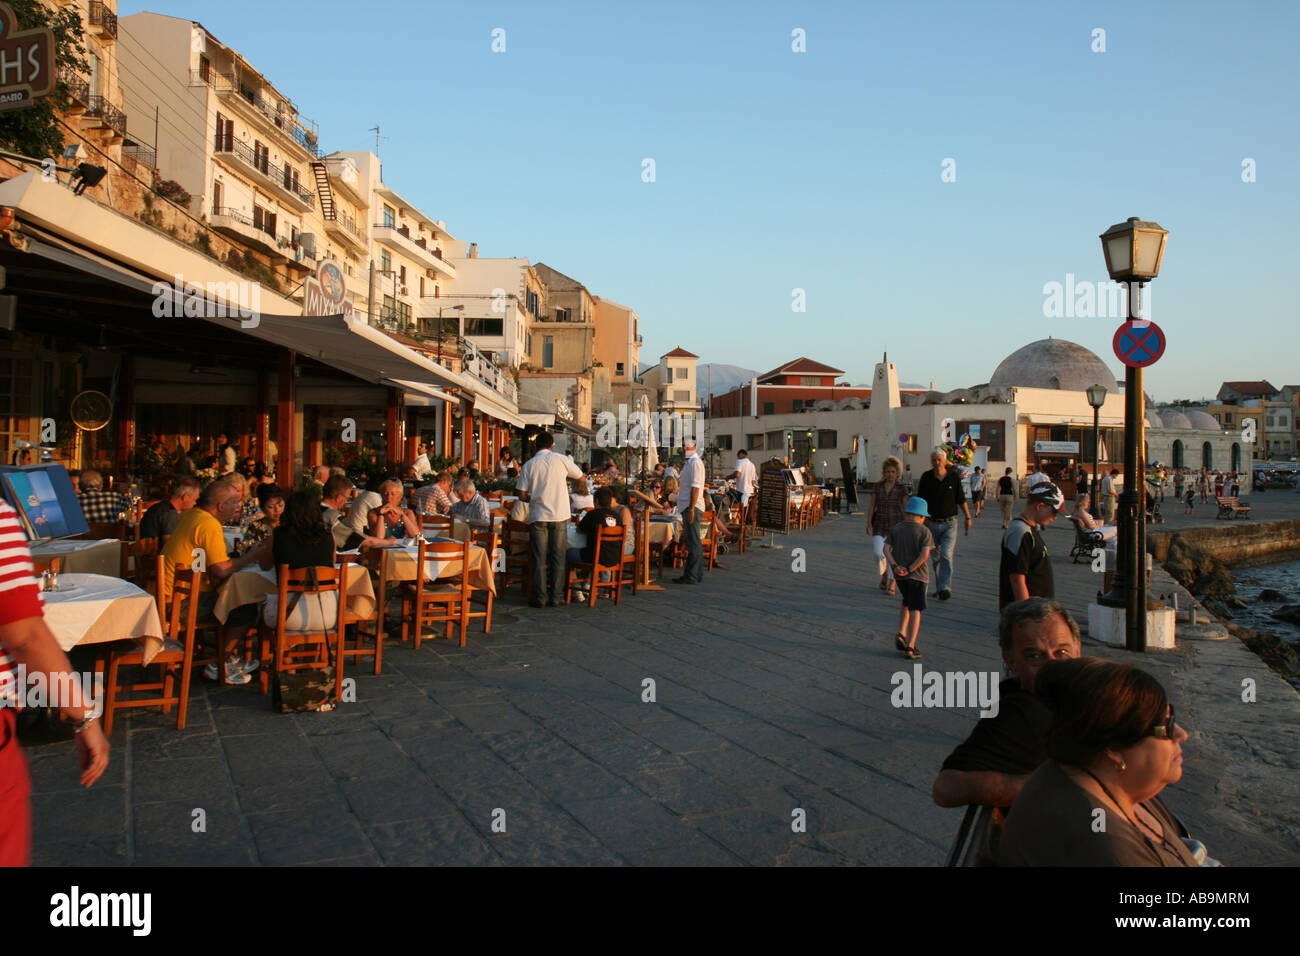 Tourists at restaurants at the old Venetian harbour at sunset in Chania, Crete, Greece - Stock Image